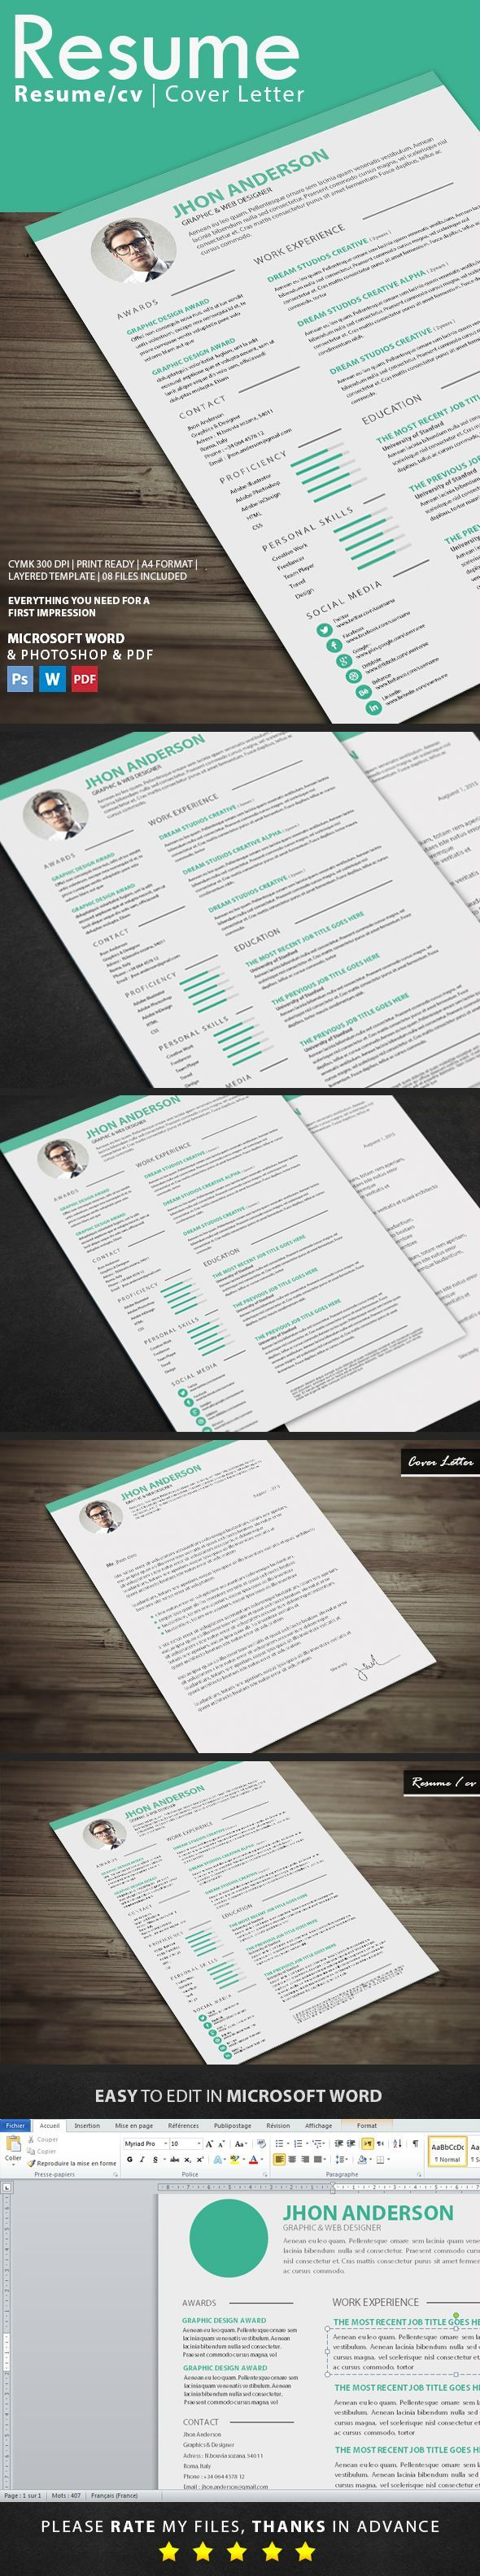 Resume by graphicstoll ResumeResume template pack for